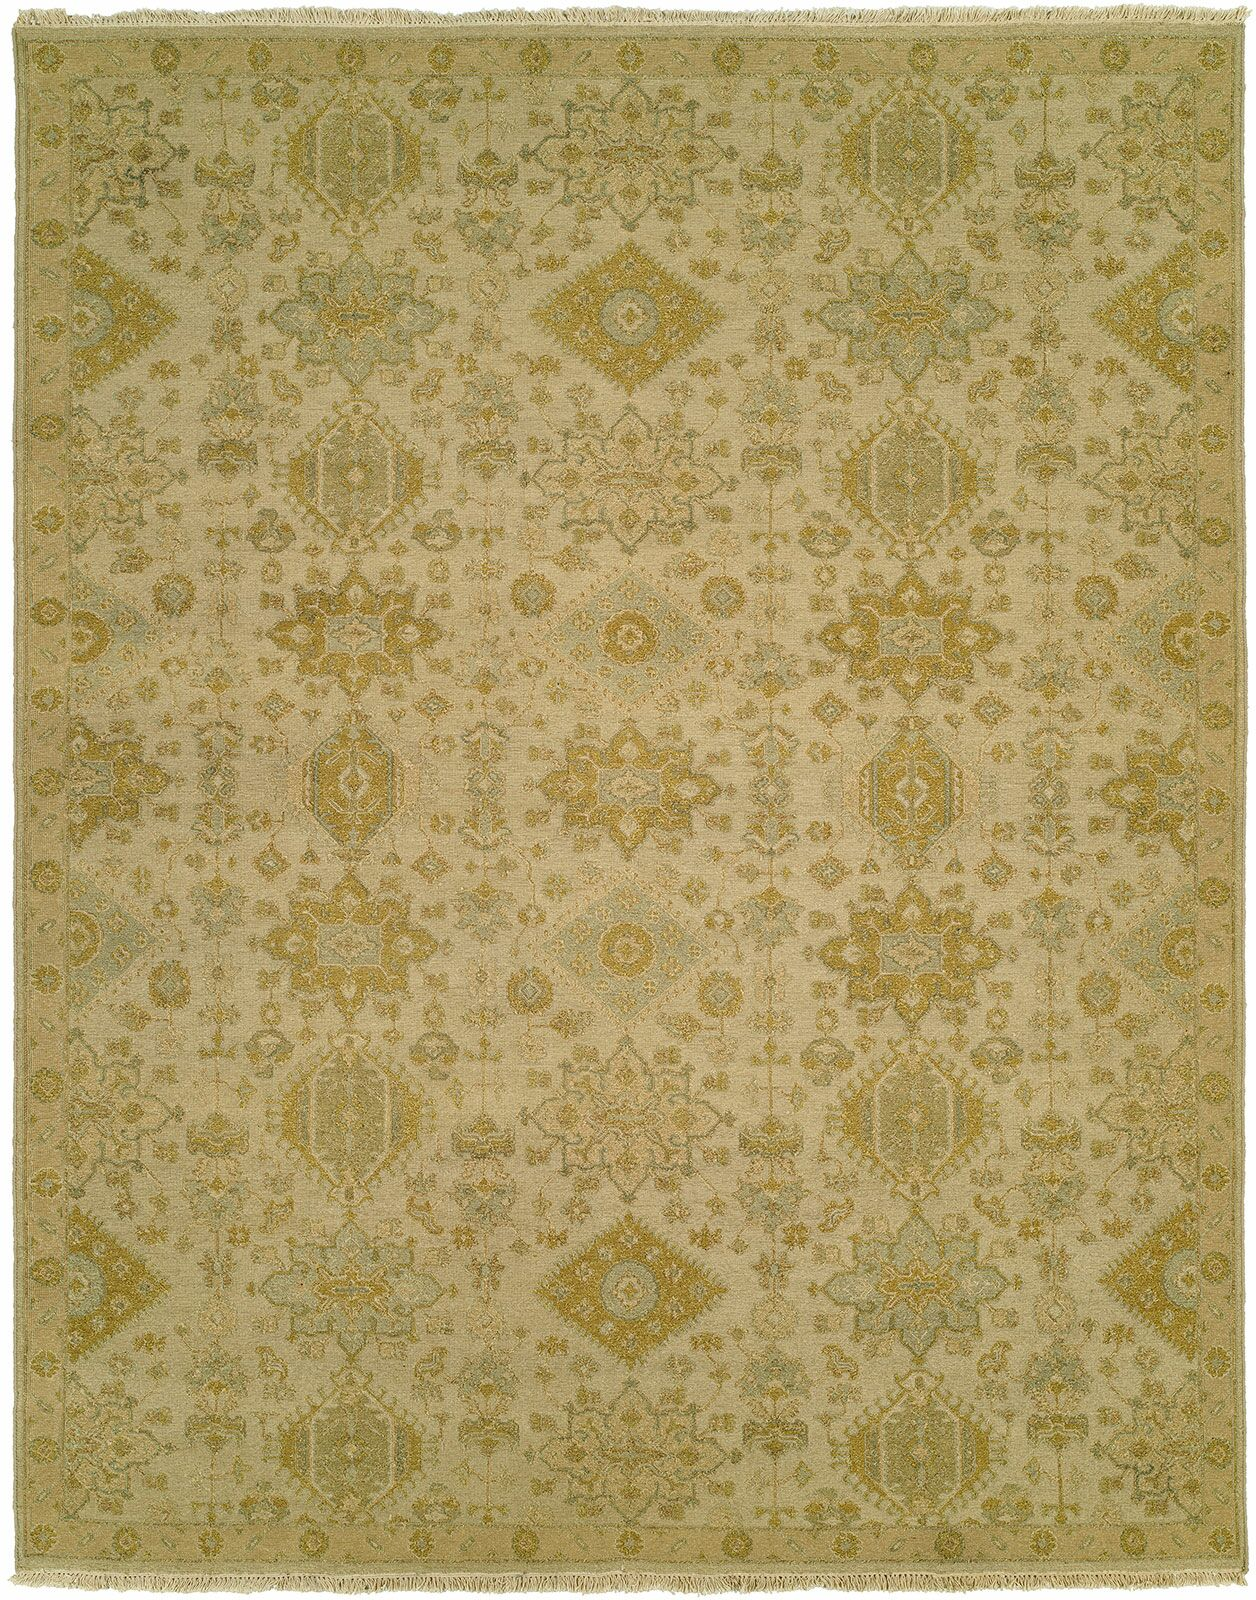 Faiyaz Wool Gold/Beige Area Rug Rug Size: Rectangle 6' x 9'